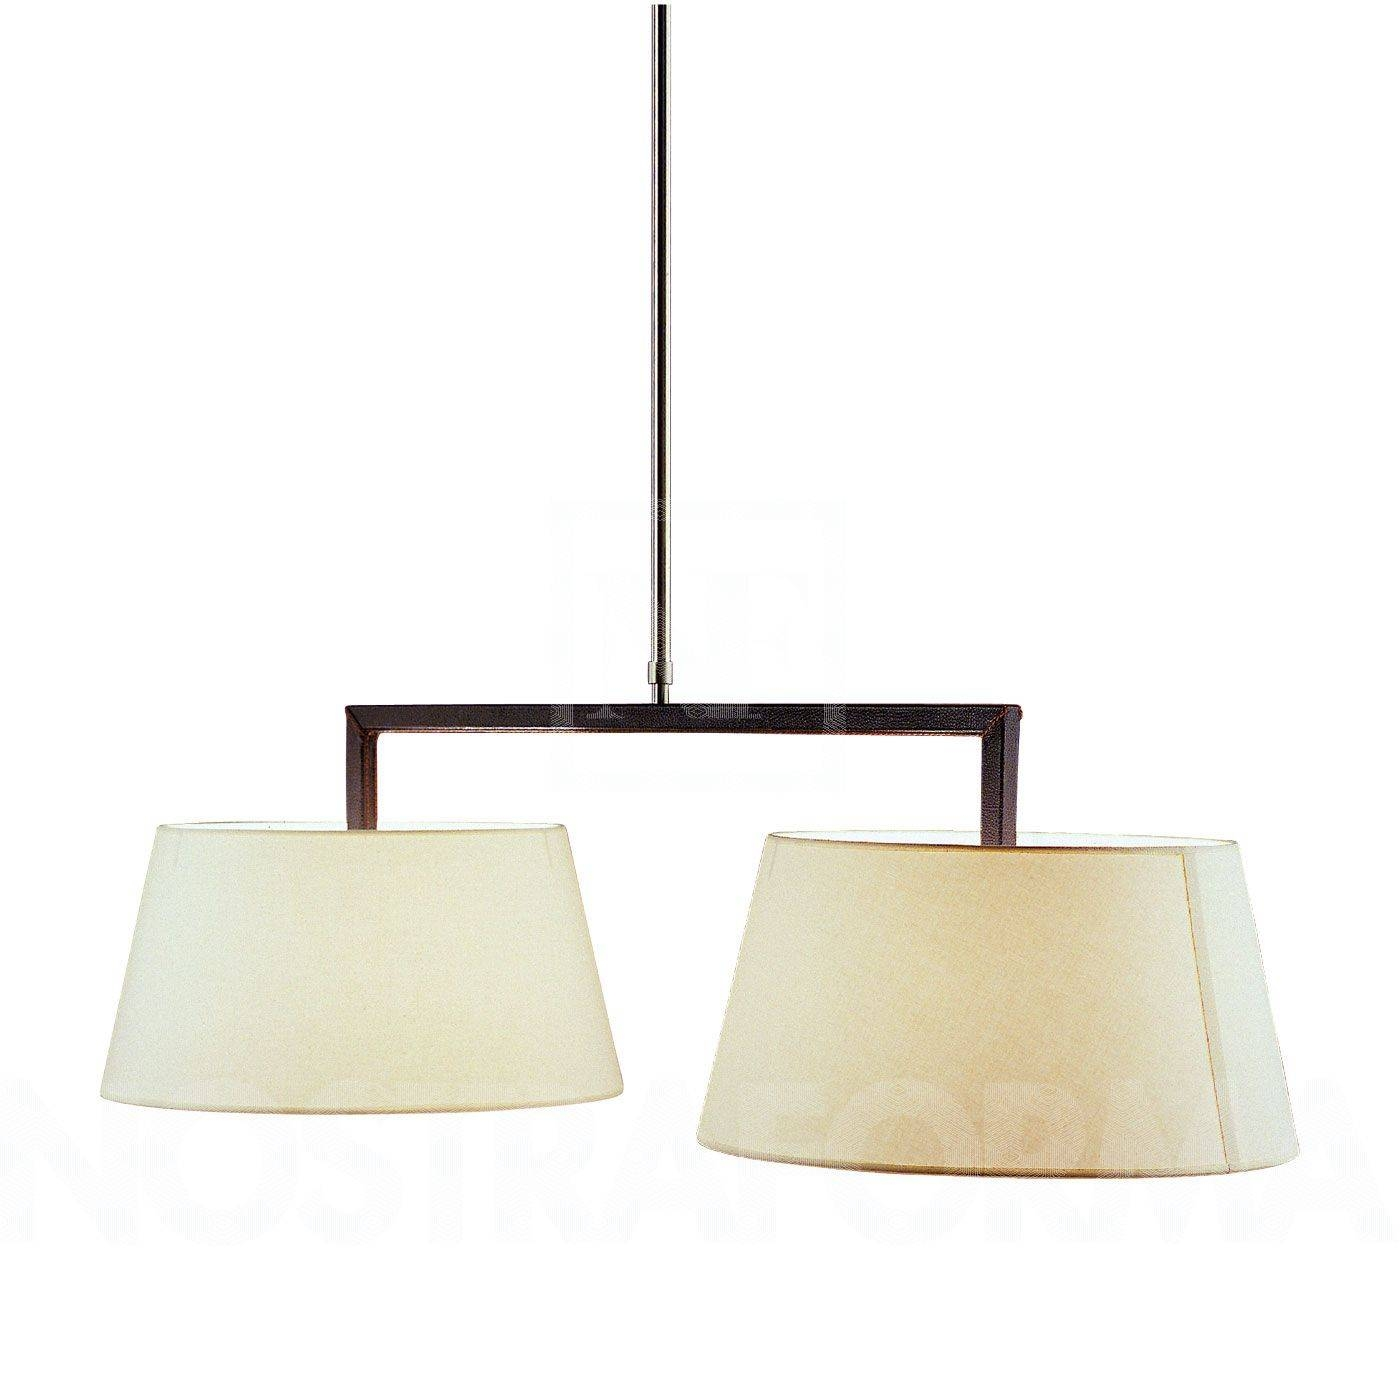 15 inspirations of double pendant lights fixtures bover lua 2 luces pendant lamp double modern and contemporary within double pendant lights aloadofball Gallery